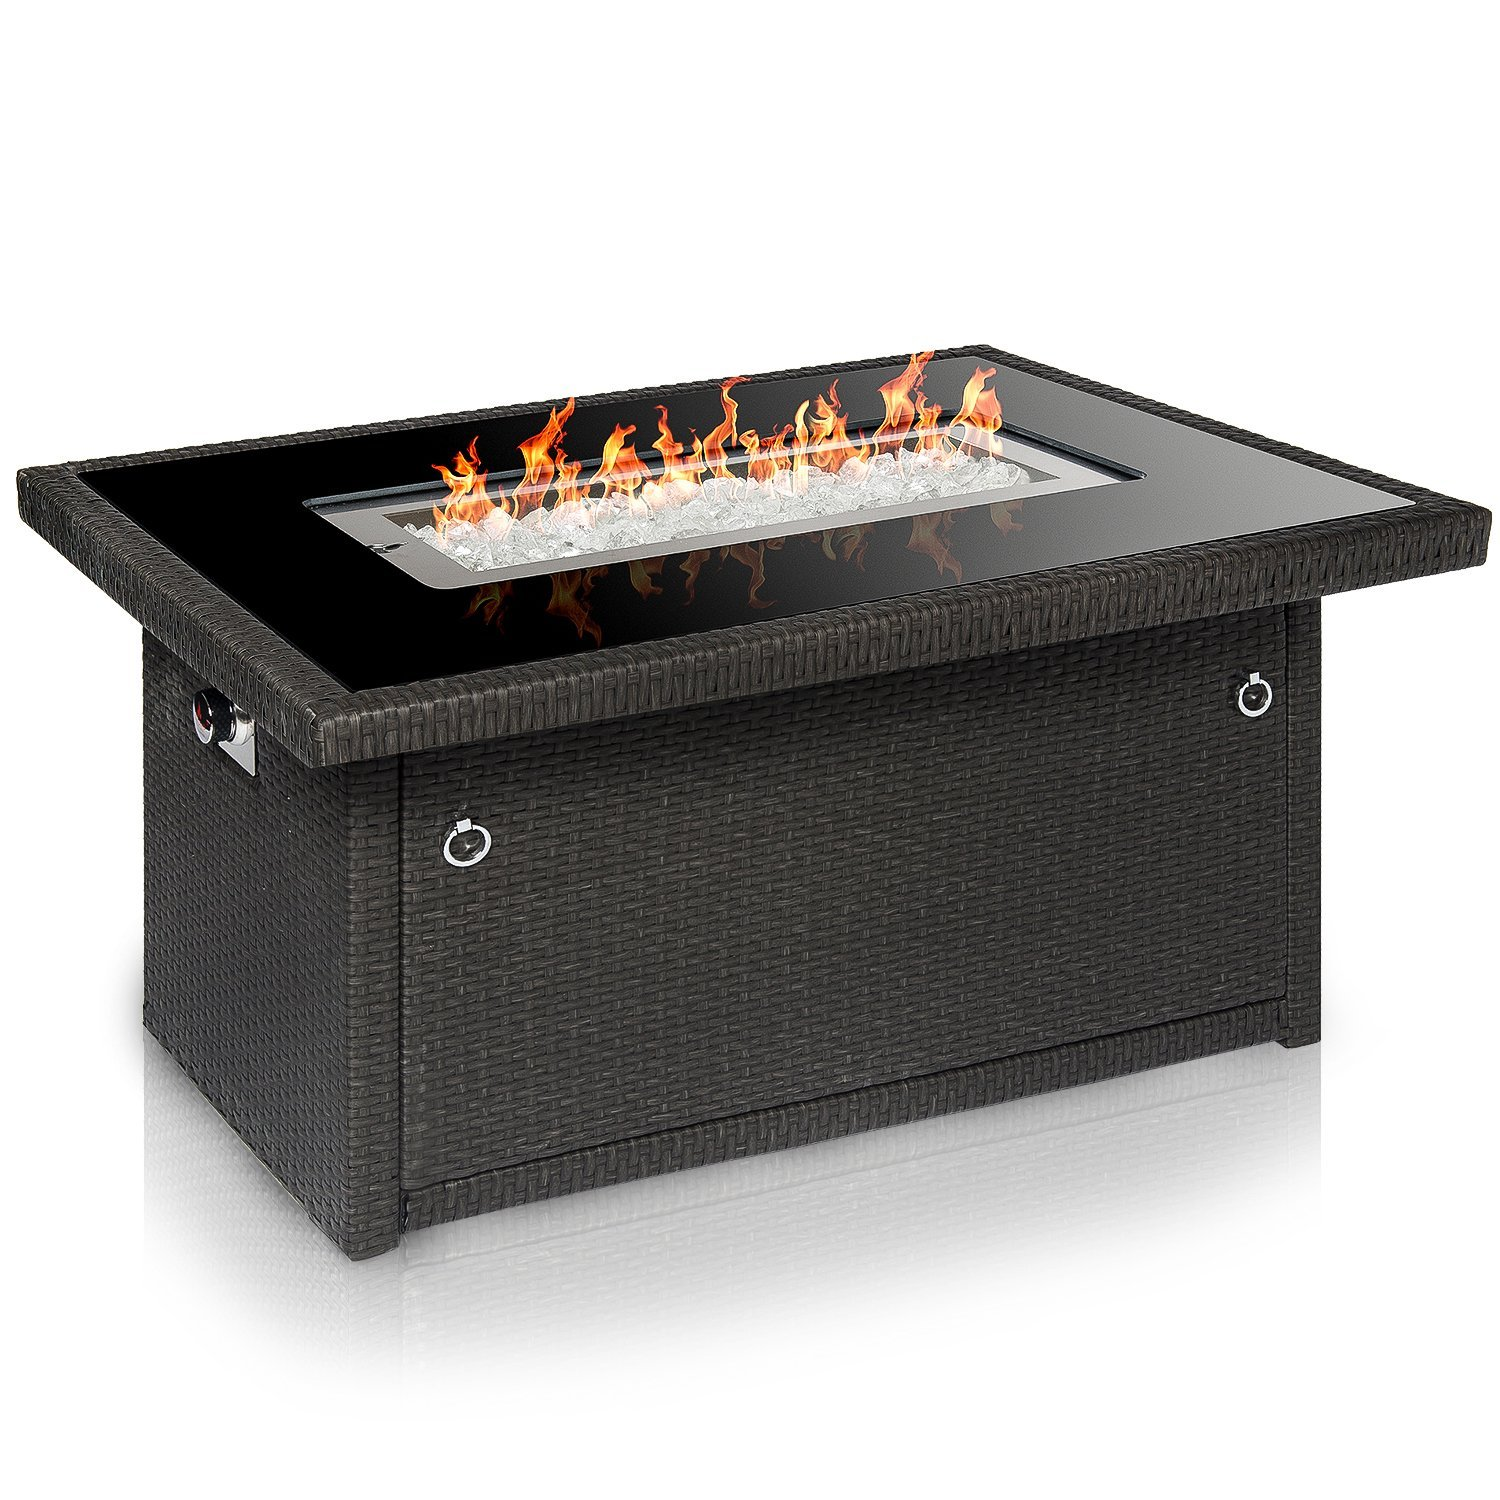 Outland Living Series 401 Grey 44-Inch Outdoor Propane Gas Fire Pit Table, Black Tempered Glass Tabletop w/Arctic Ice Glass Rocks and Resin Wicker Panels, Slate Grey/Rectangle